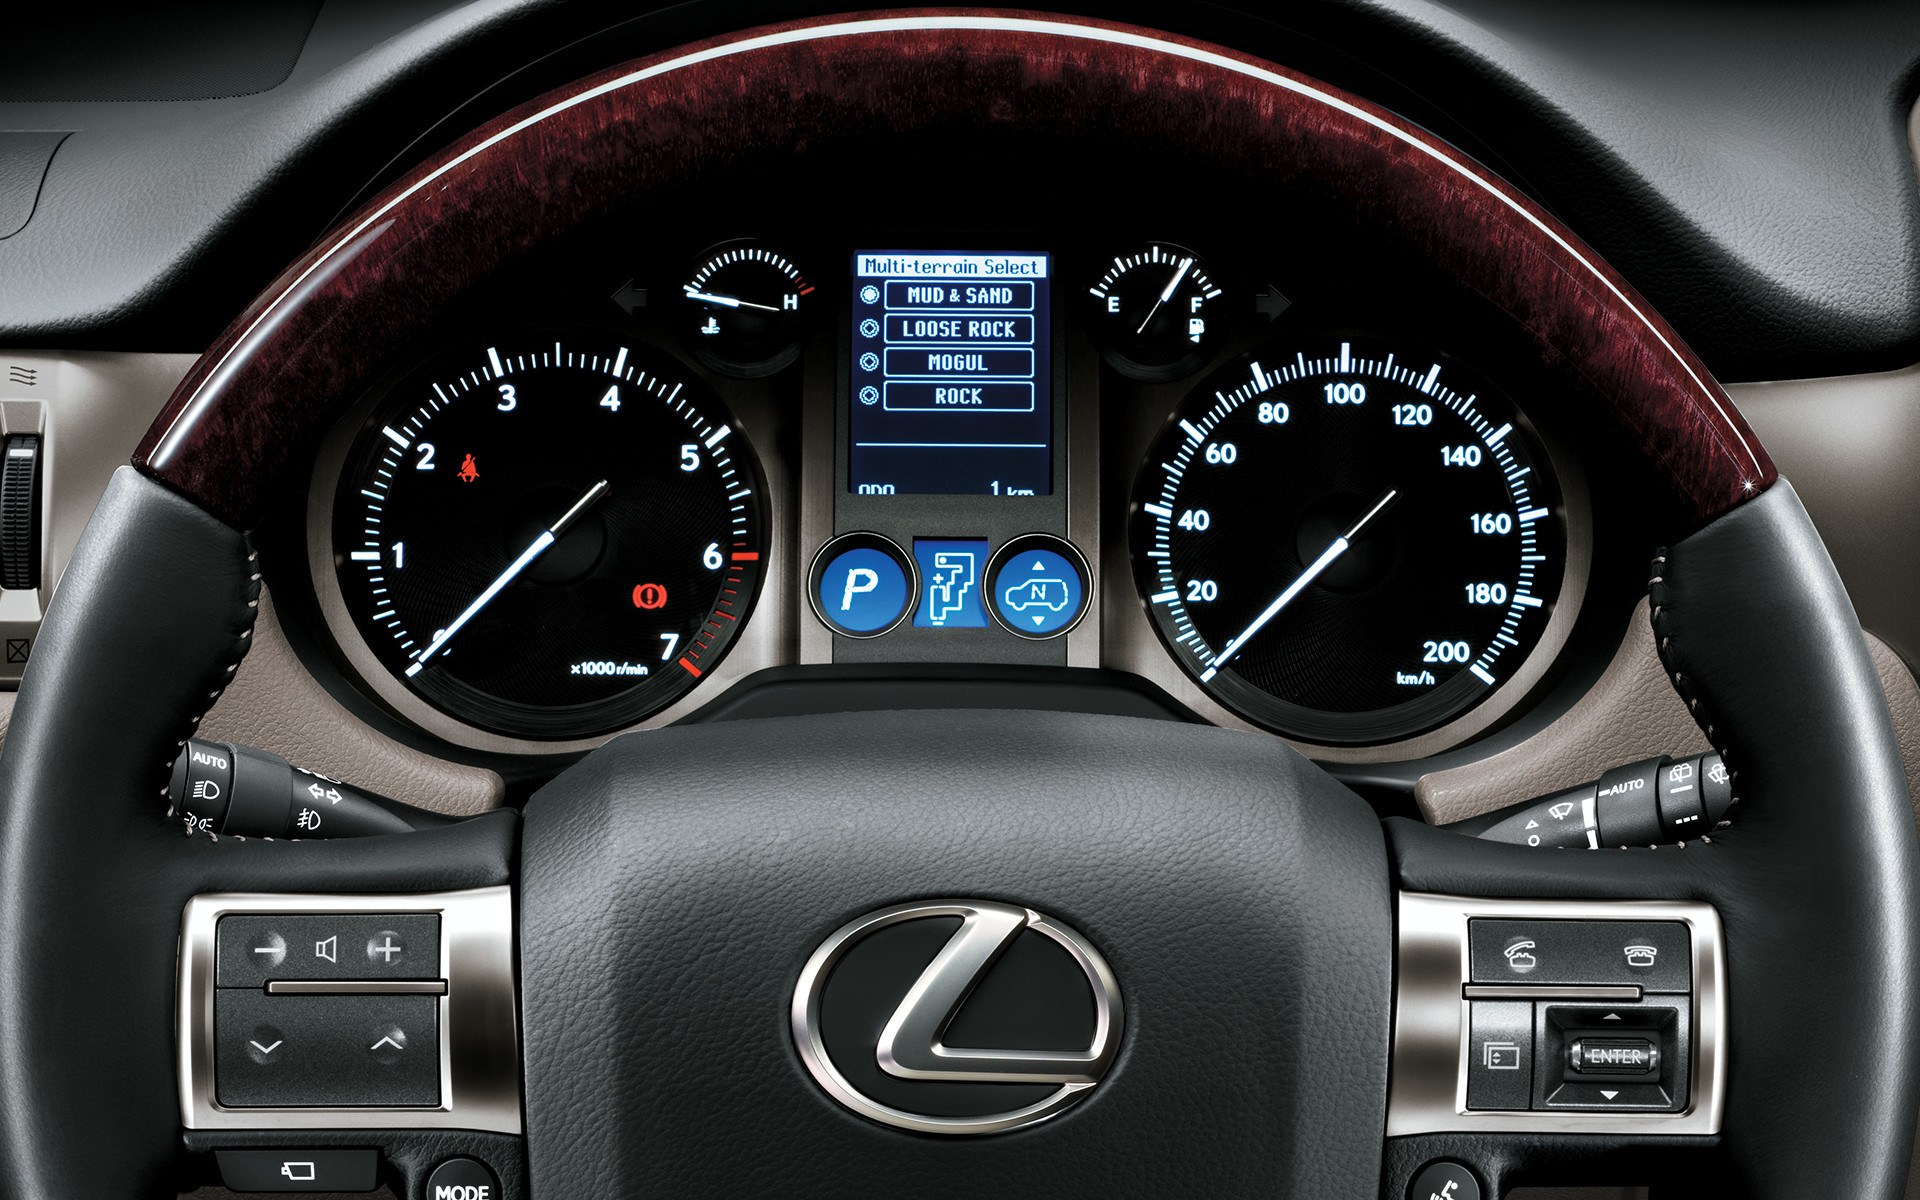 2018 Lexus GX Technology at Ken Shaw Lexus in Toronto